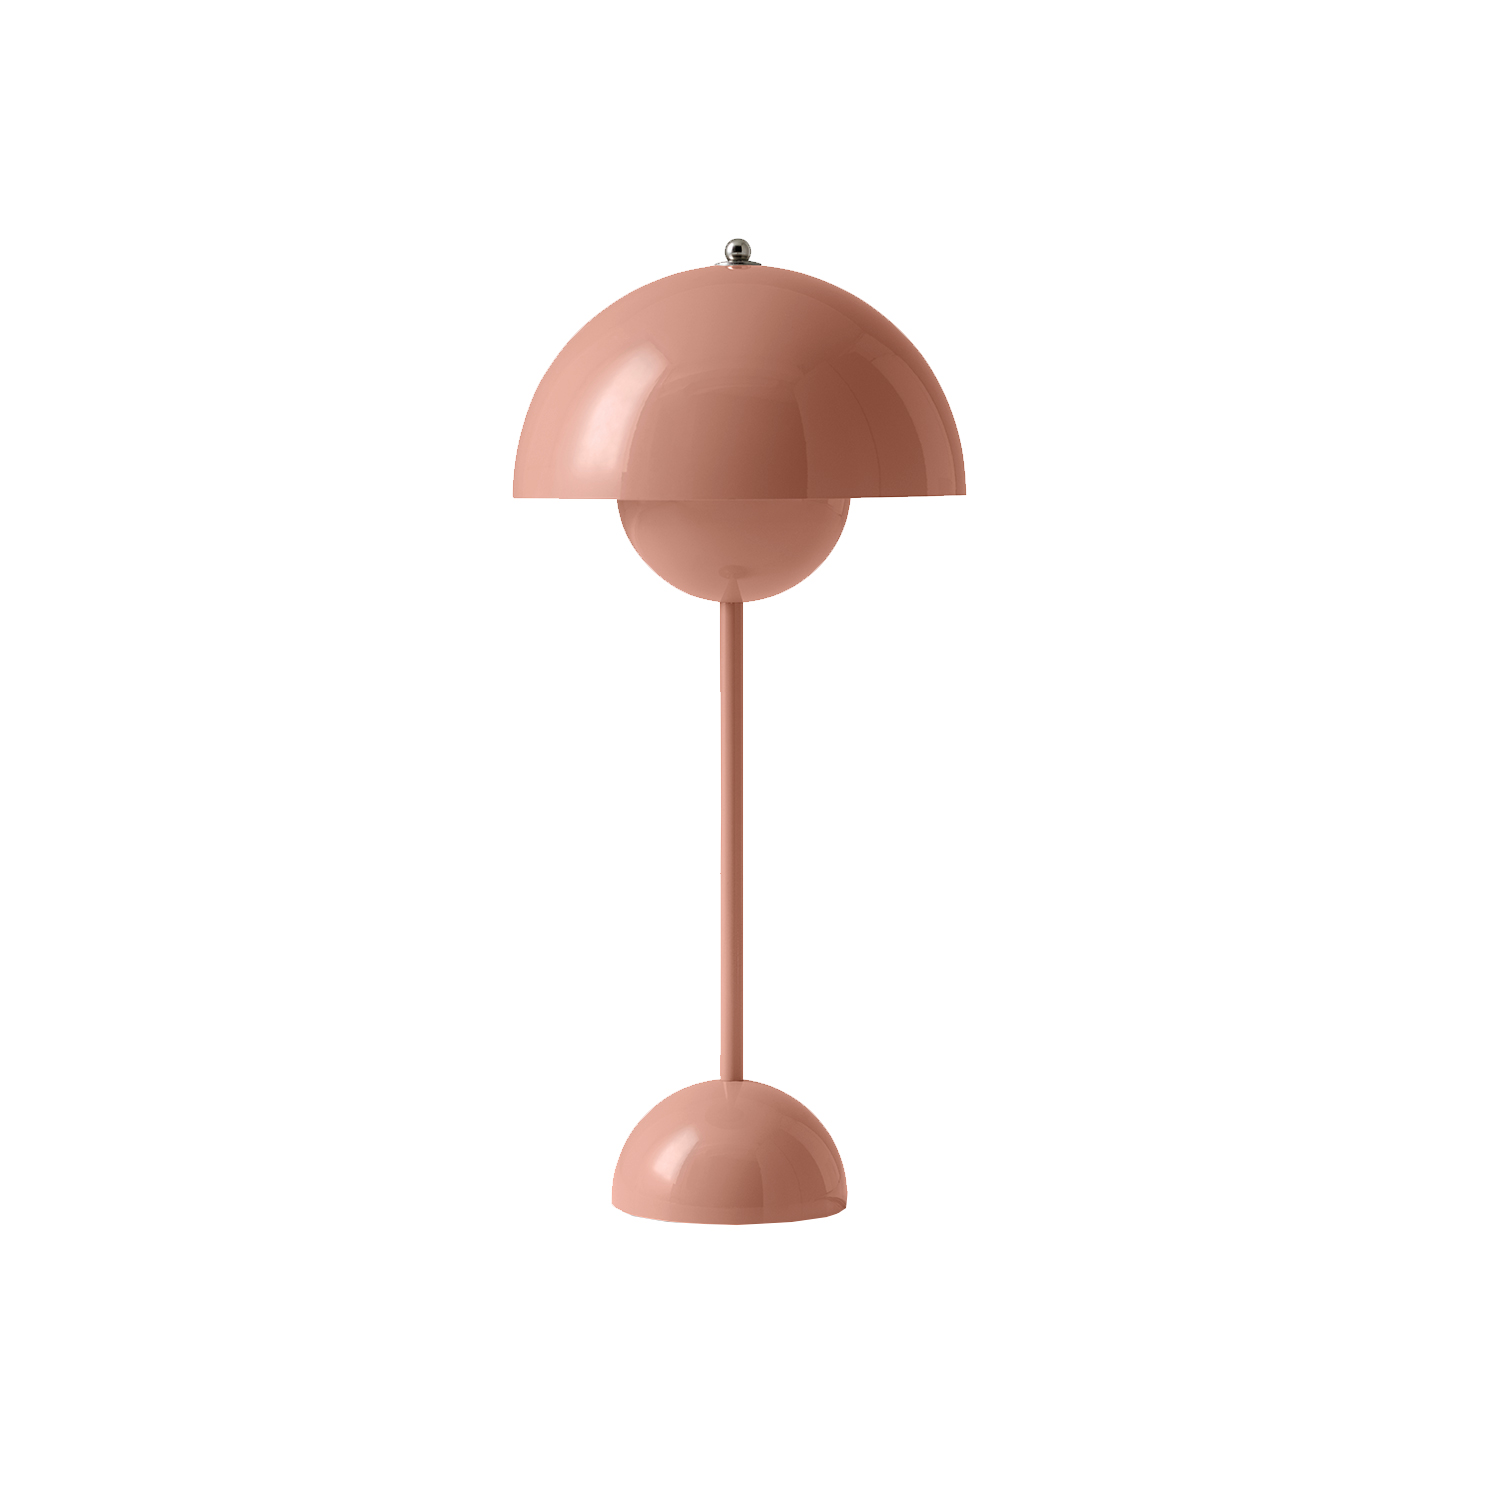 Bilde av &Tradition-Flowerpot Bordlampe Vp3, Beige/Rød